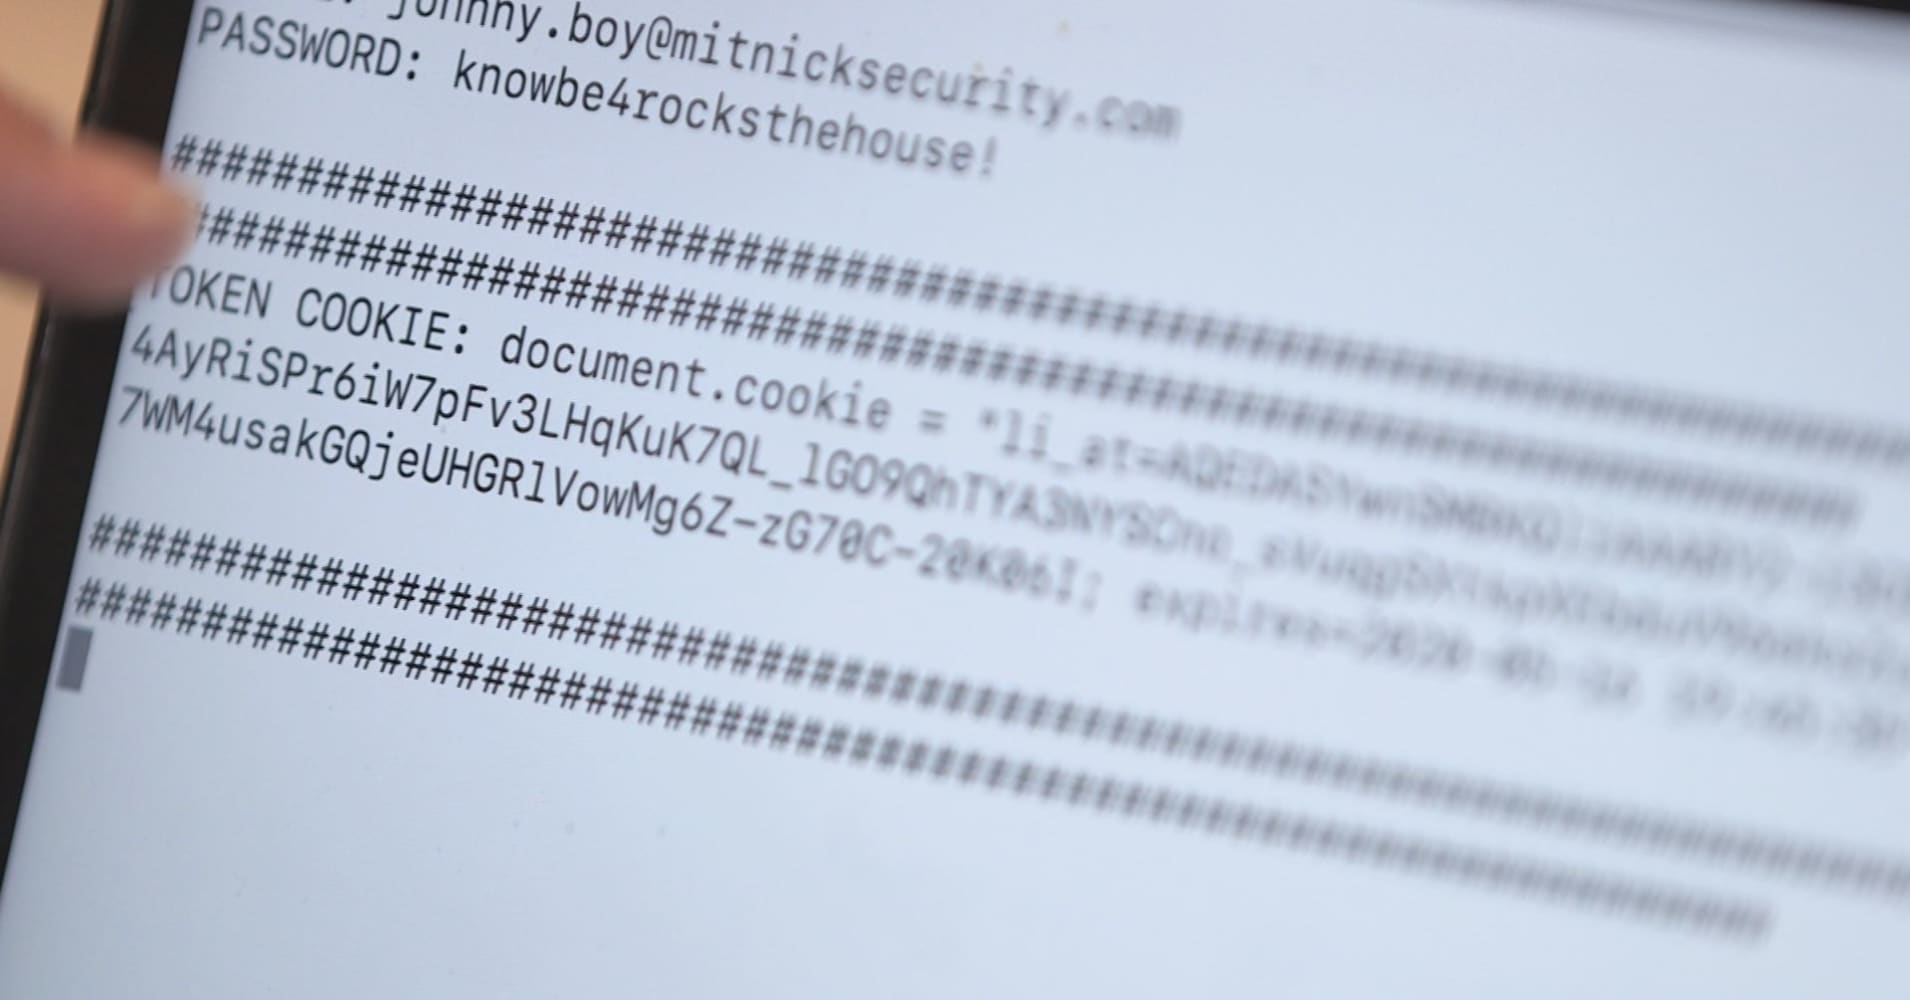 2-factor authentication may be hackable, expert says